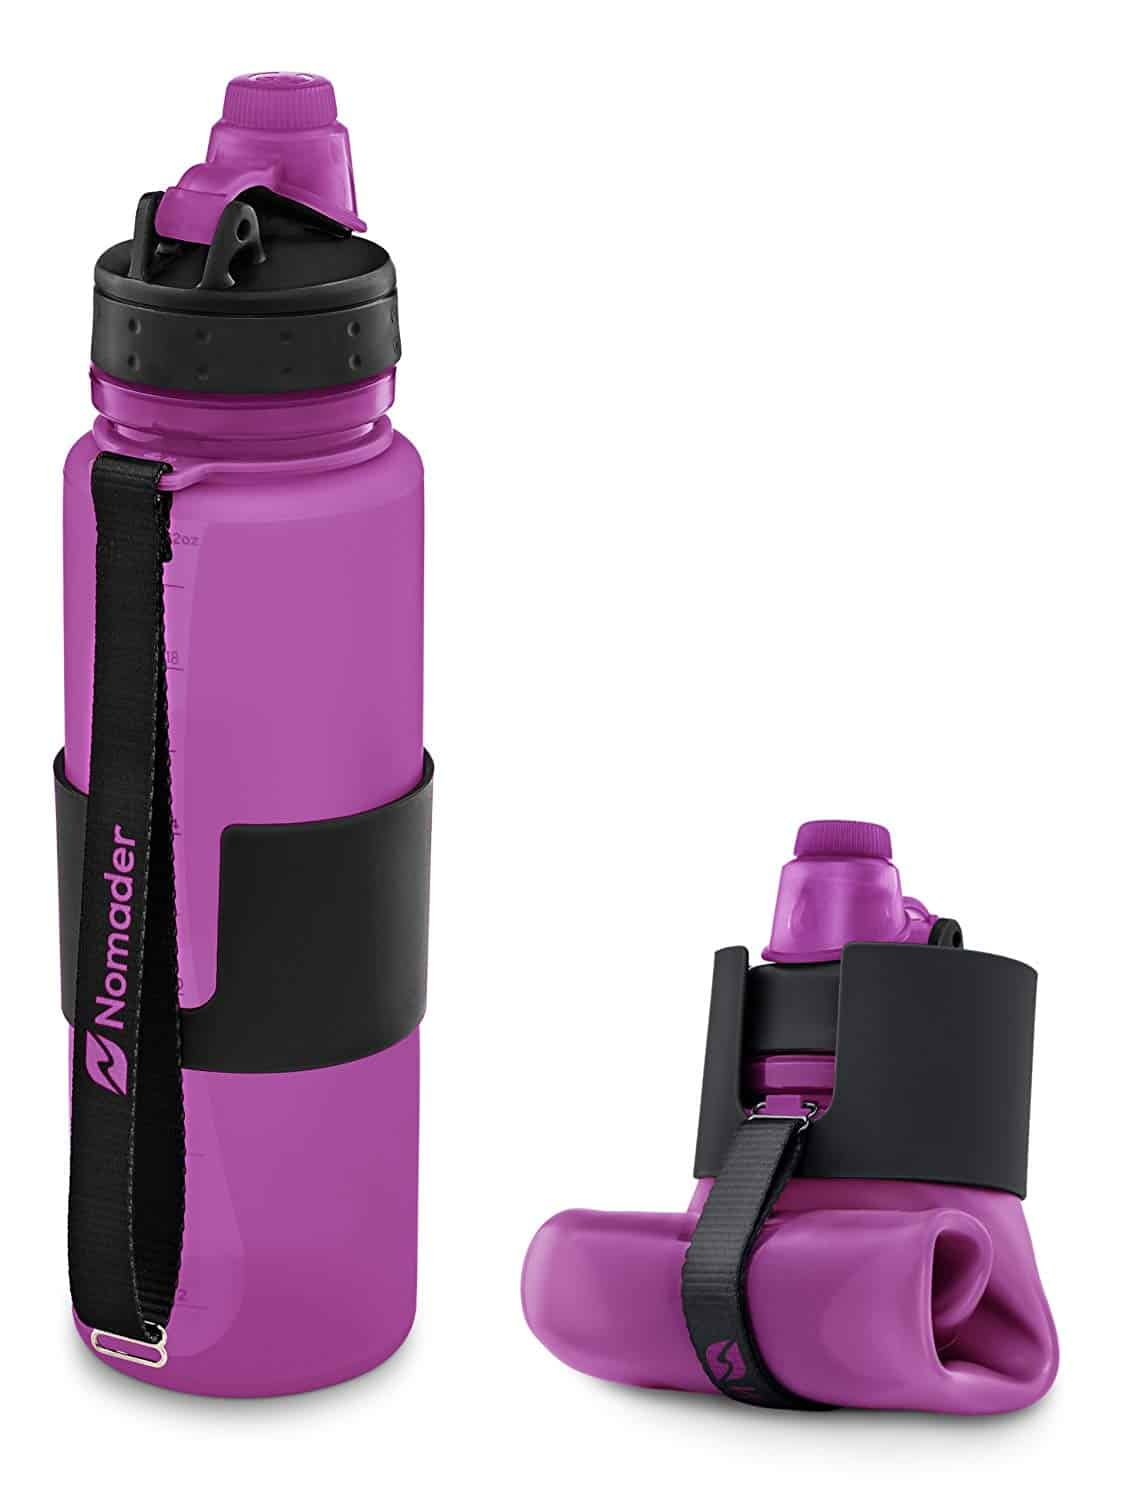 Collapsible Water Bottle - Kids Travel Accessories